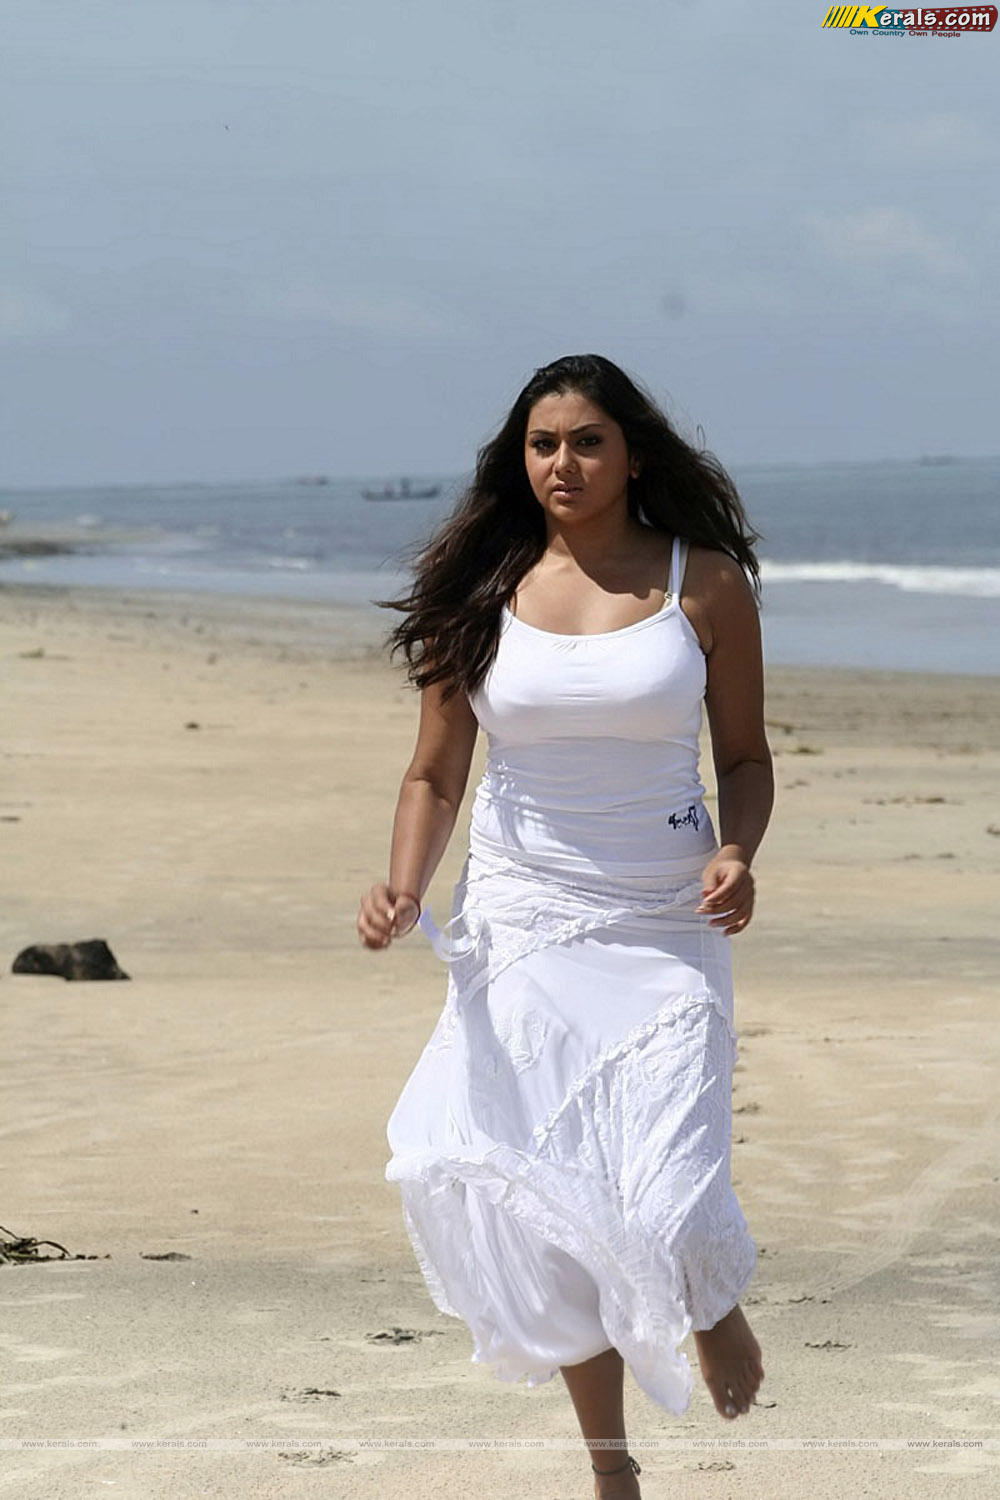 Malayalam Posters: Namitha very very hot and sexy in transparent dress ...